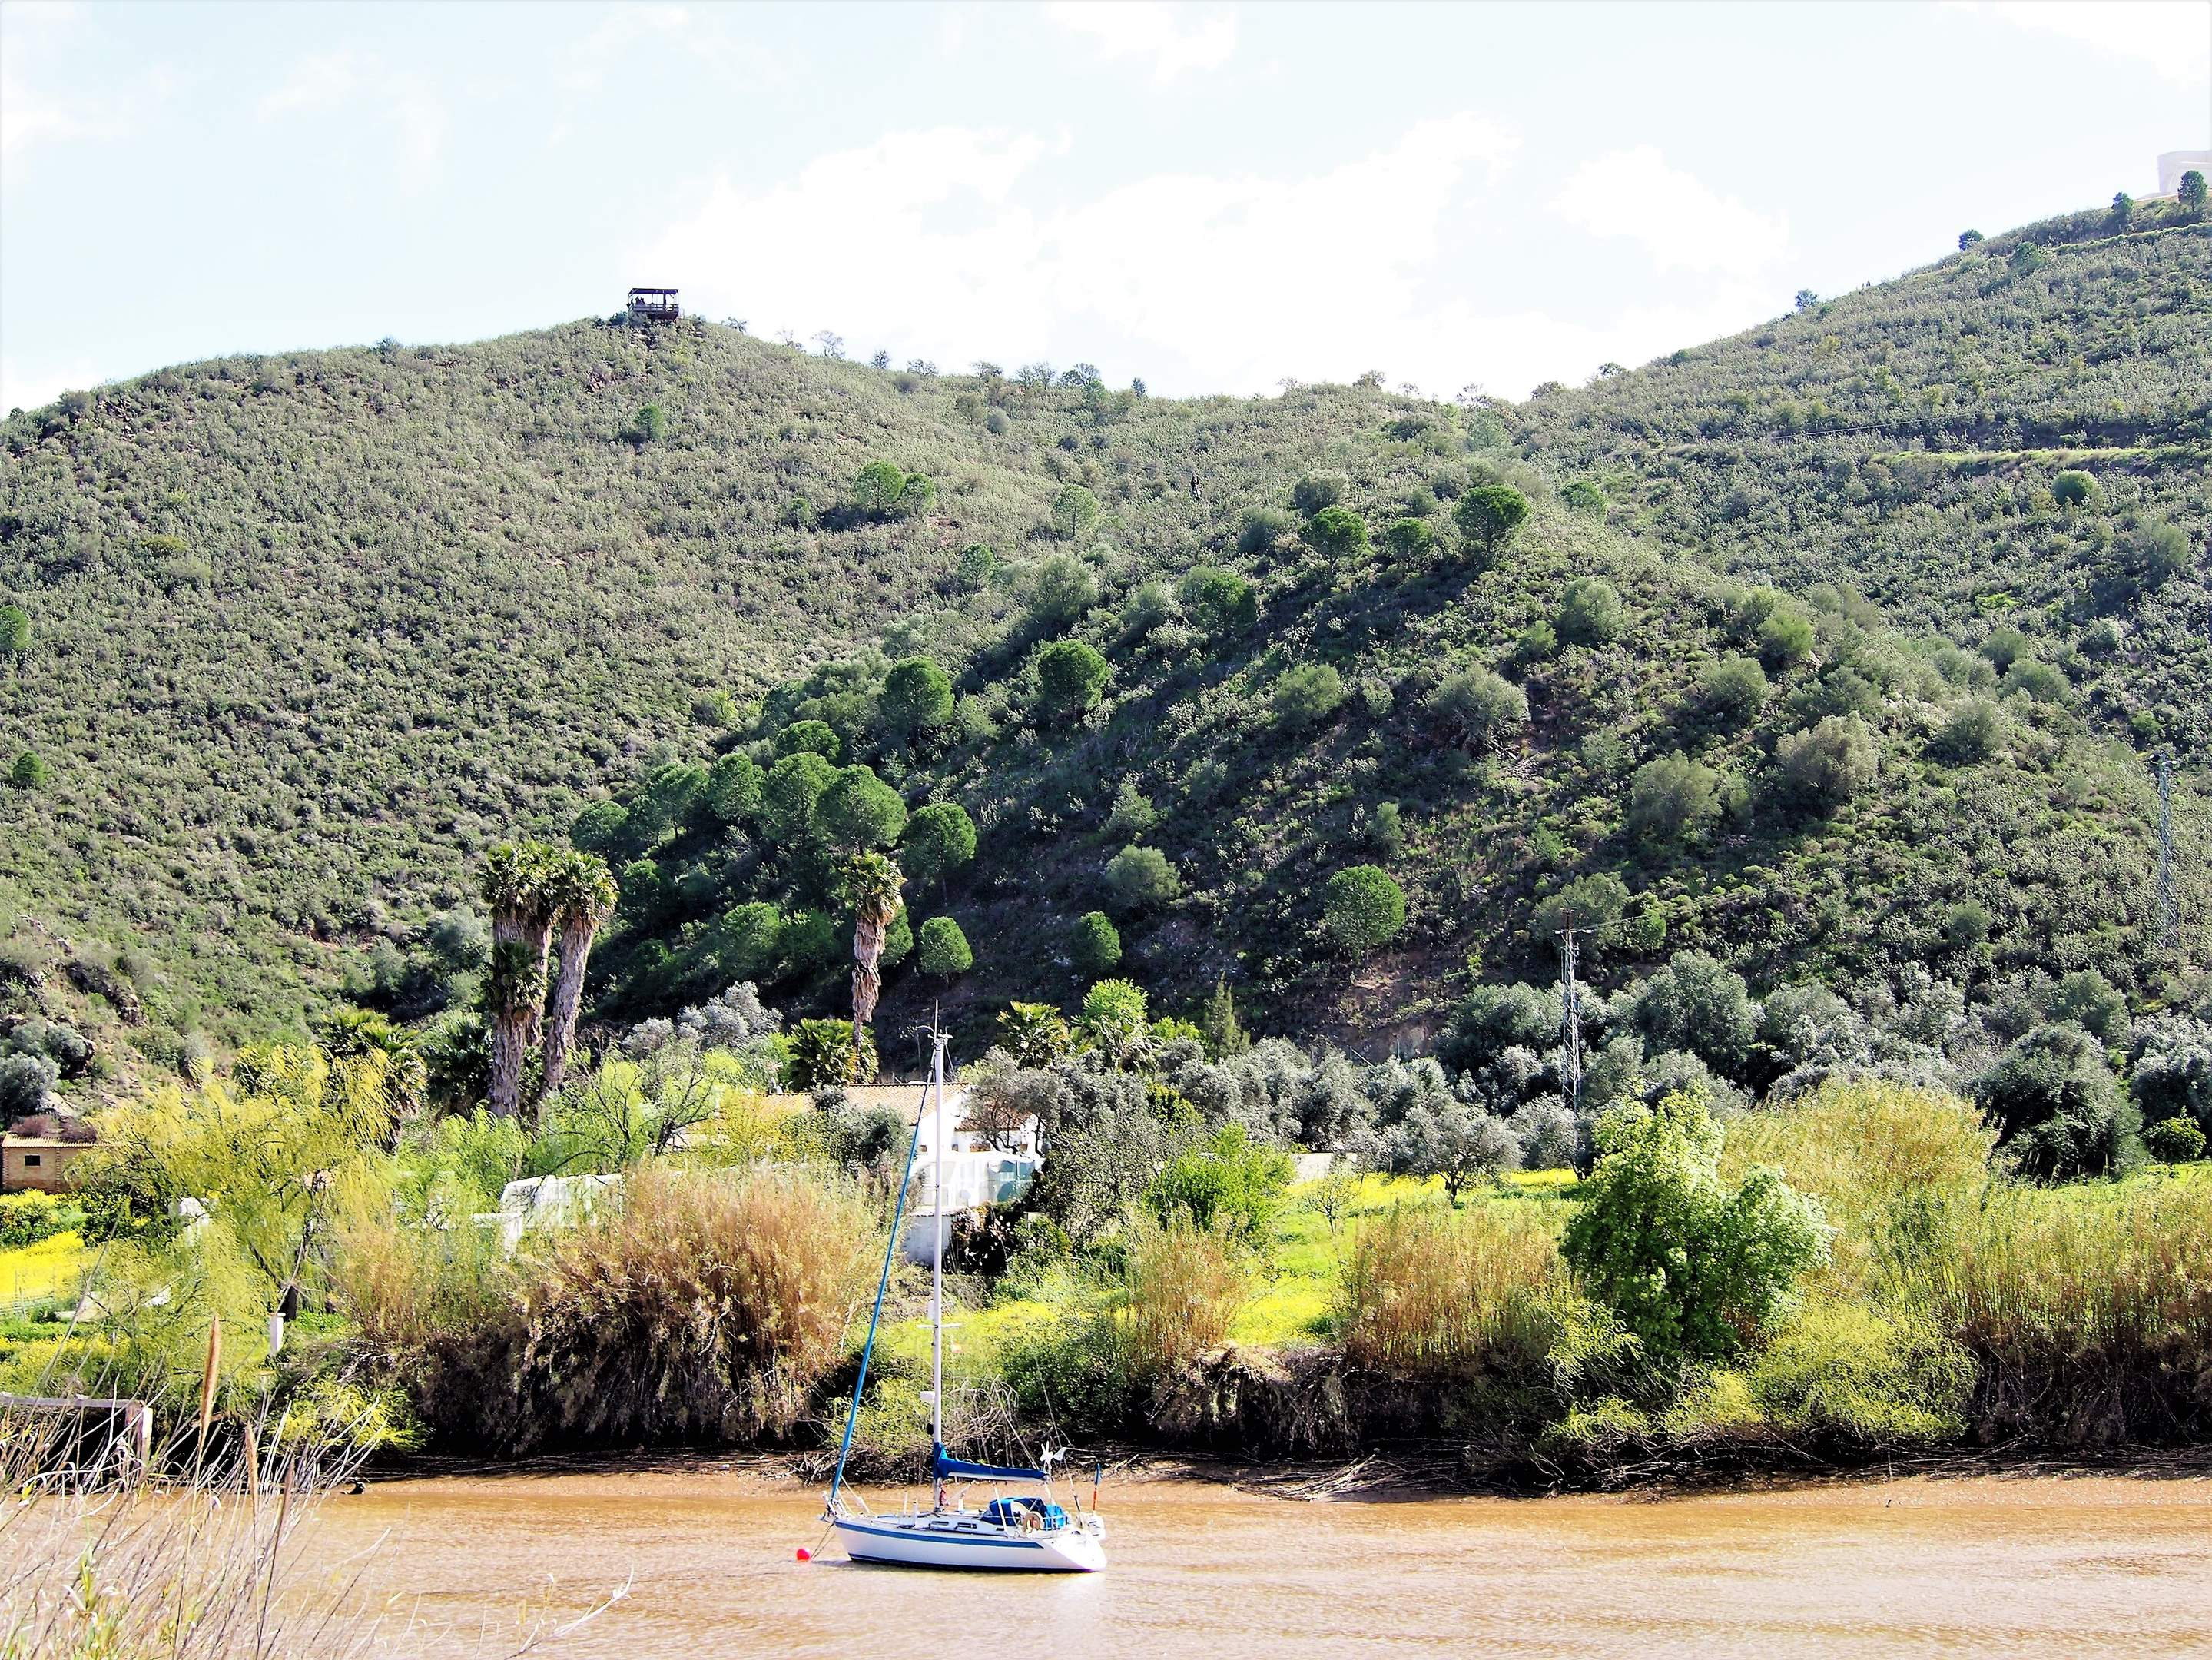 Look closely - coming down the zip line across the Guadiana River which provides the border between Spain and Portugal.